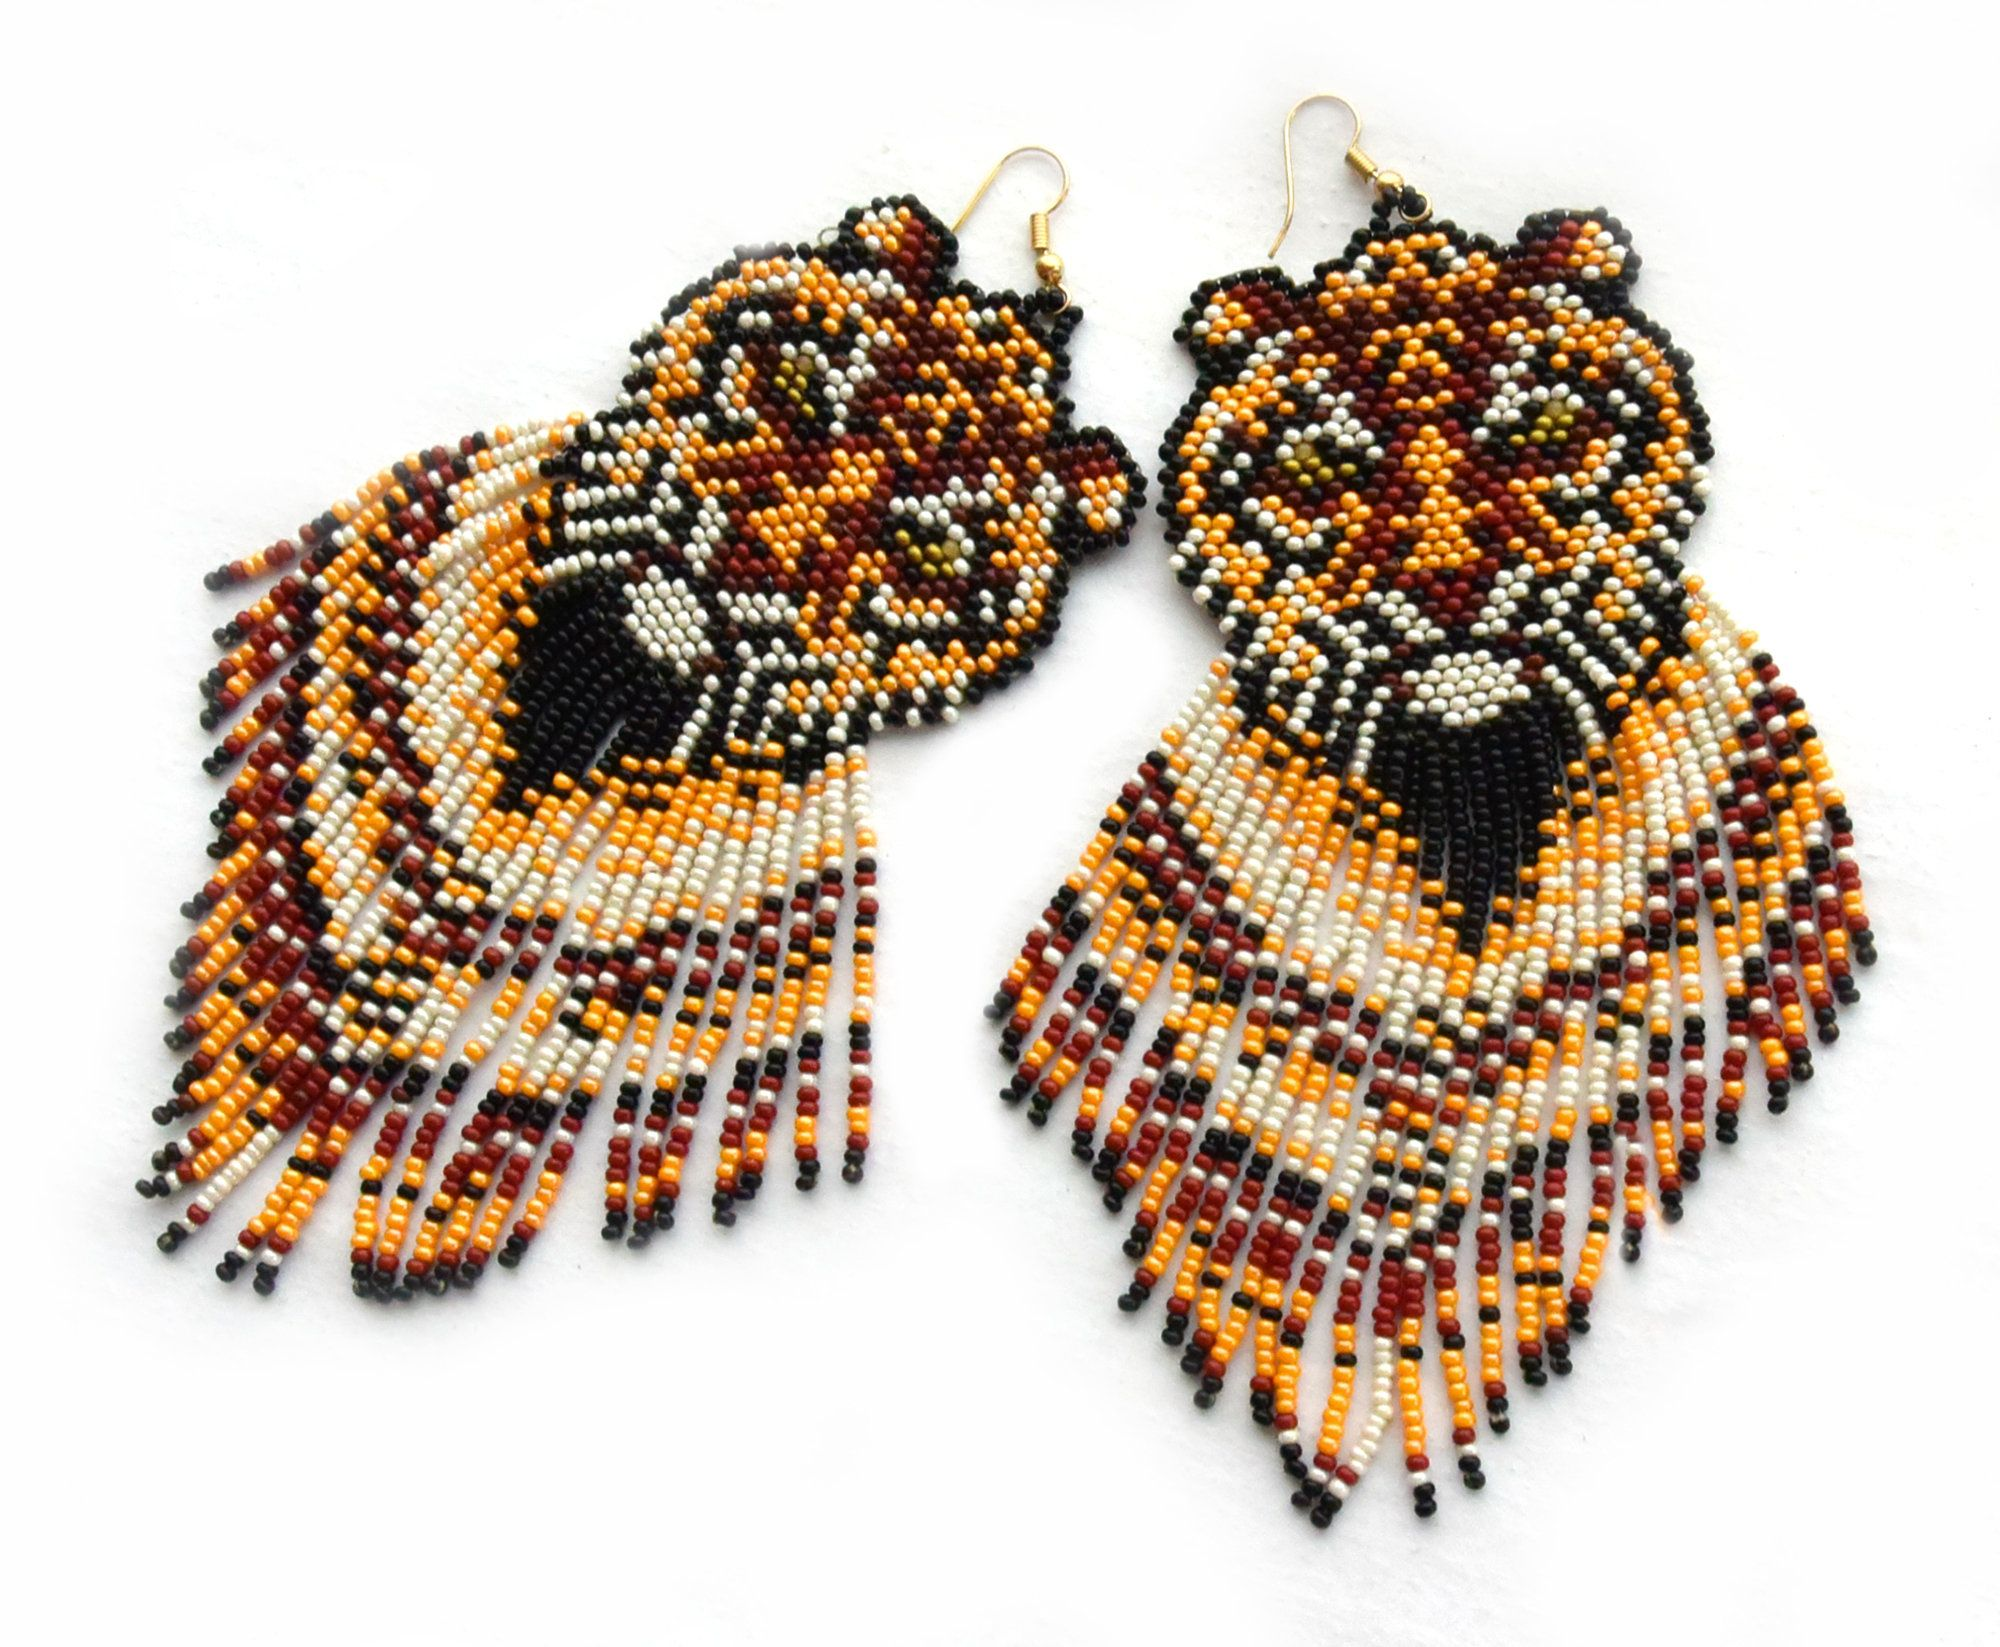 Beaded Fringe Earrings Boho Festival Style Brick Stitch with Crystals Red to Blue Gradient